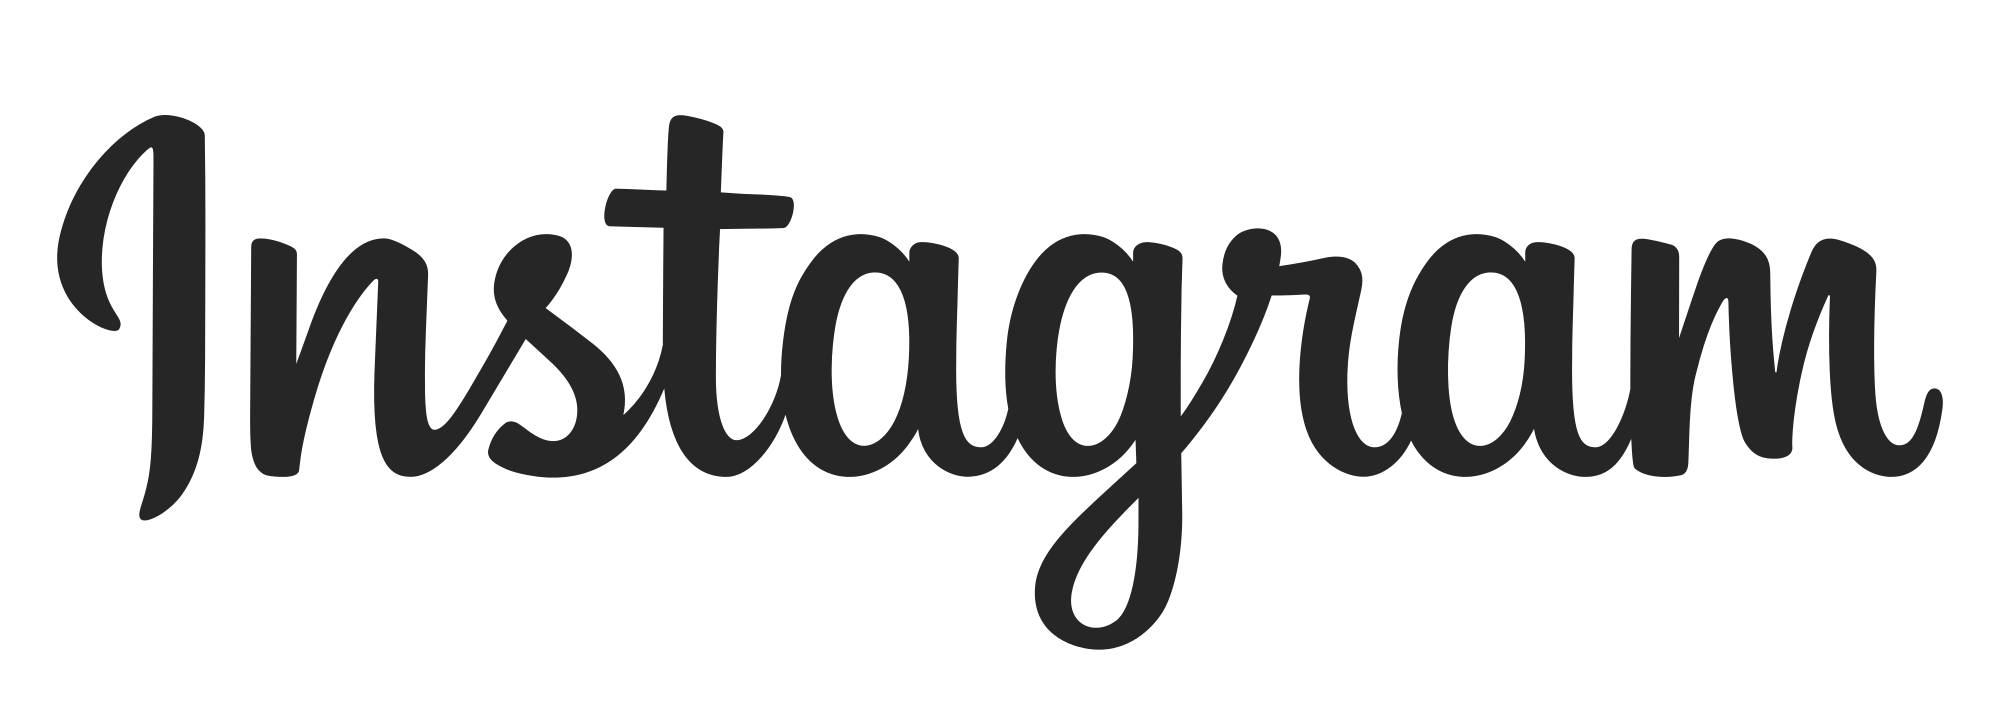 Instagram text png. Logo